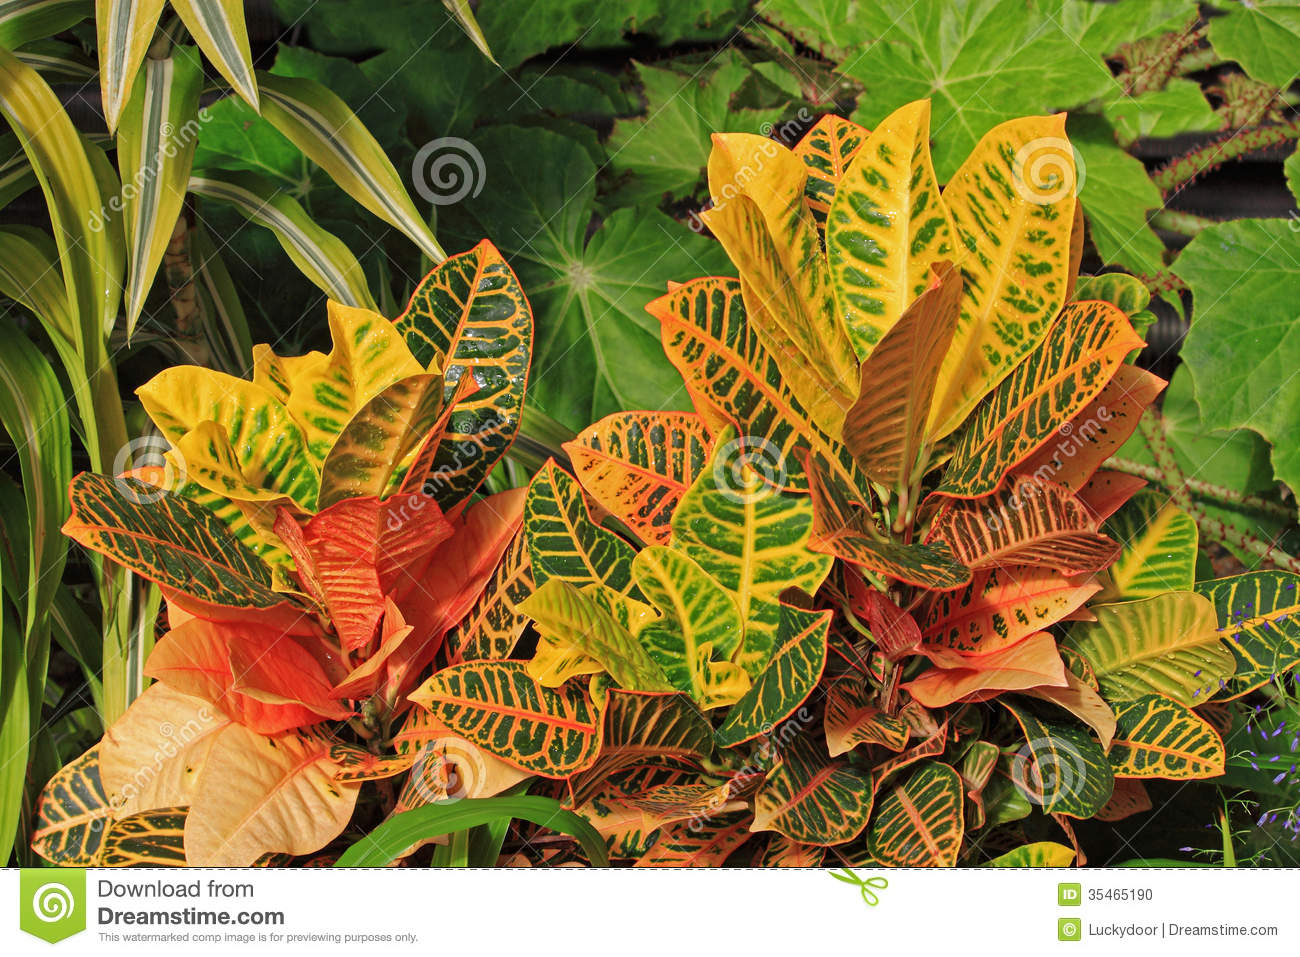 Decorative plants stock photo image 35465190 for Decorative plants for garden